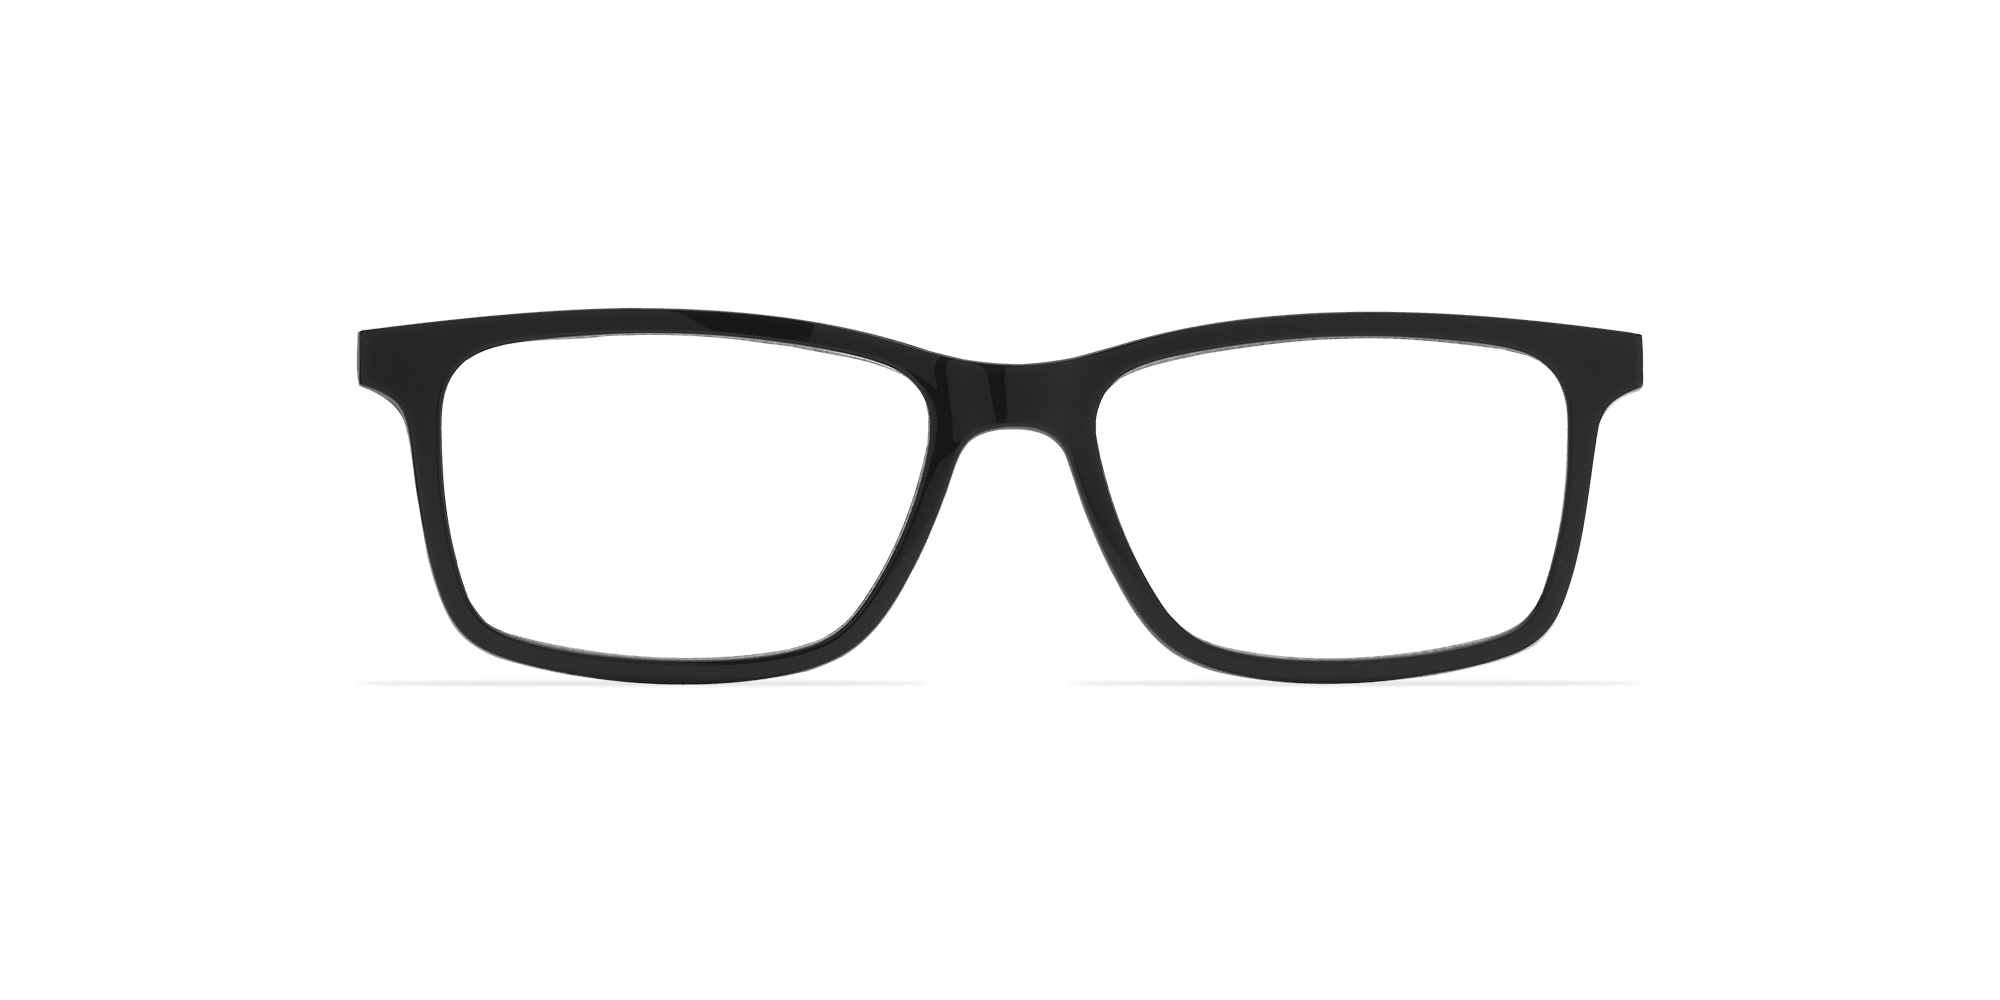 afflelou/france/products/smart_clip/clips_glasses/TMK32NVBK015316.png